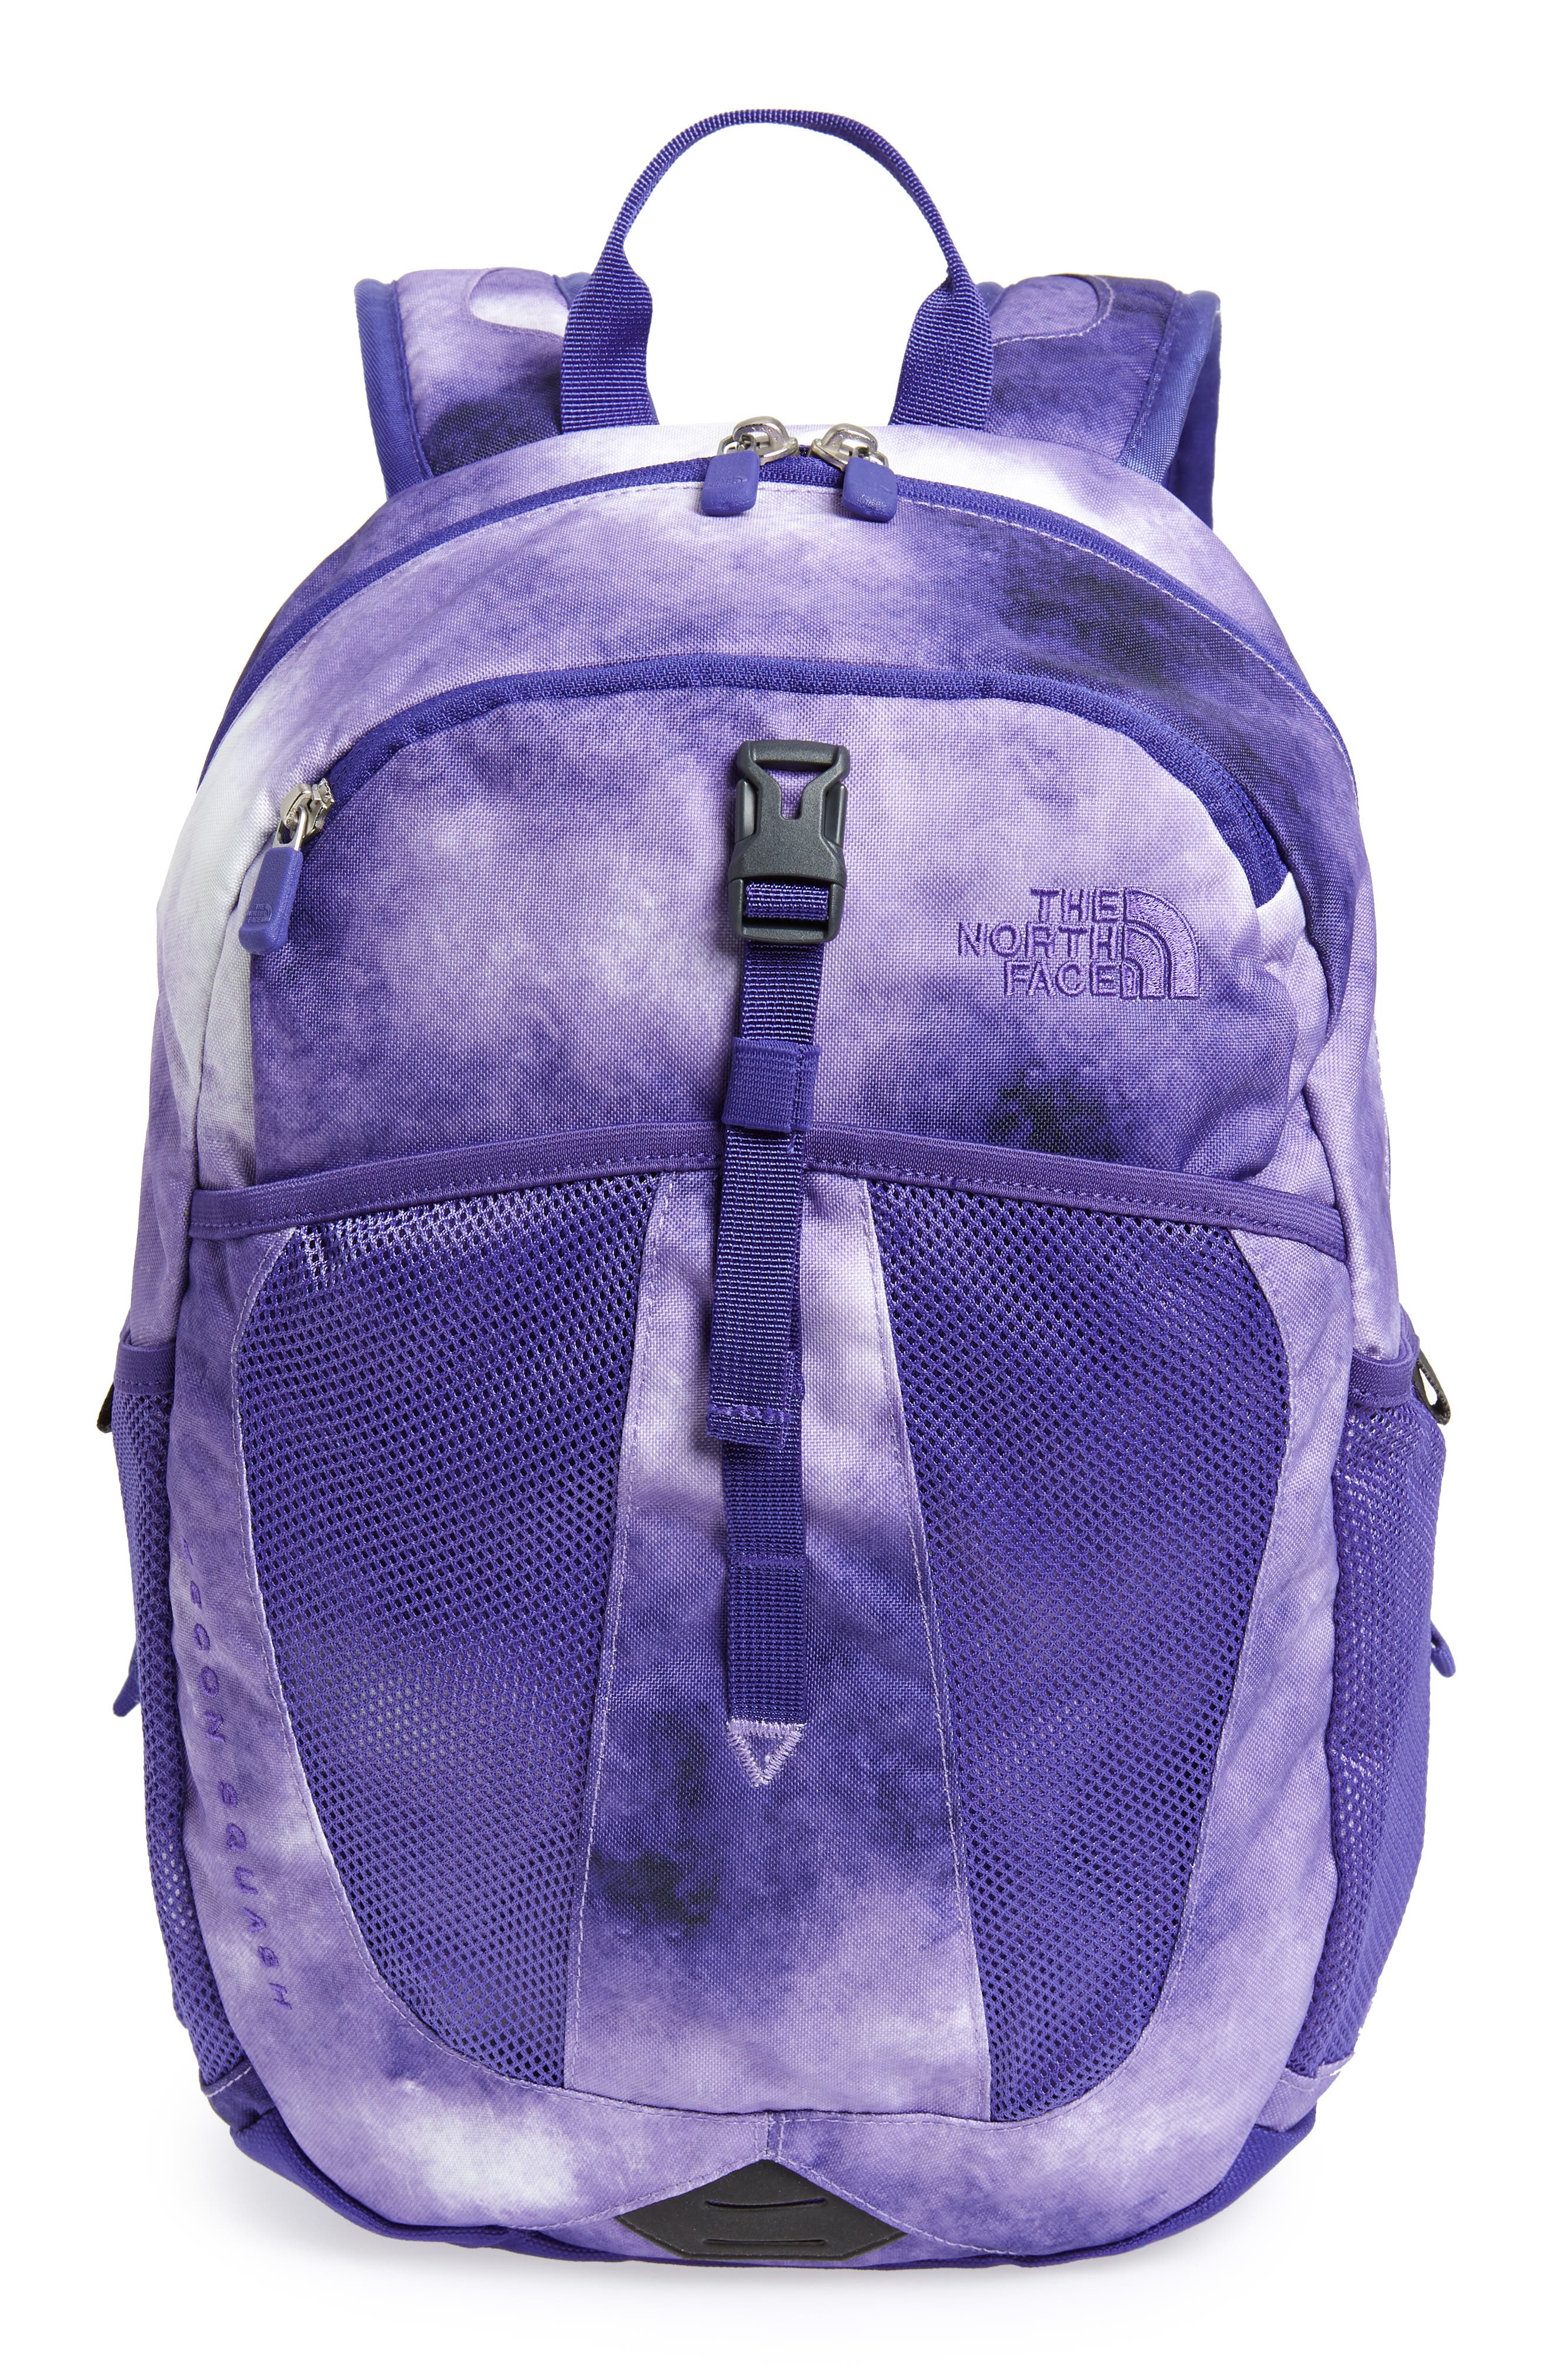 Recon Squash Backpack,                         Main,                         color, 501